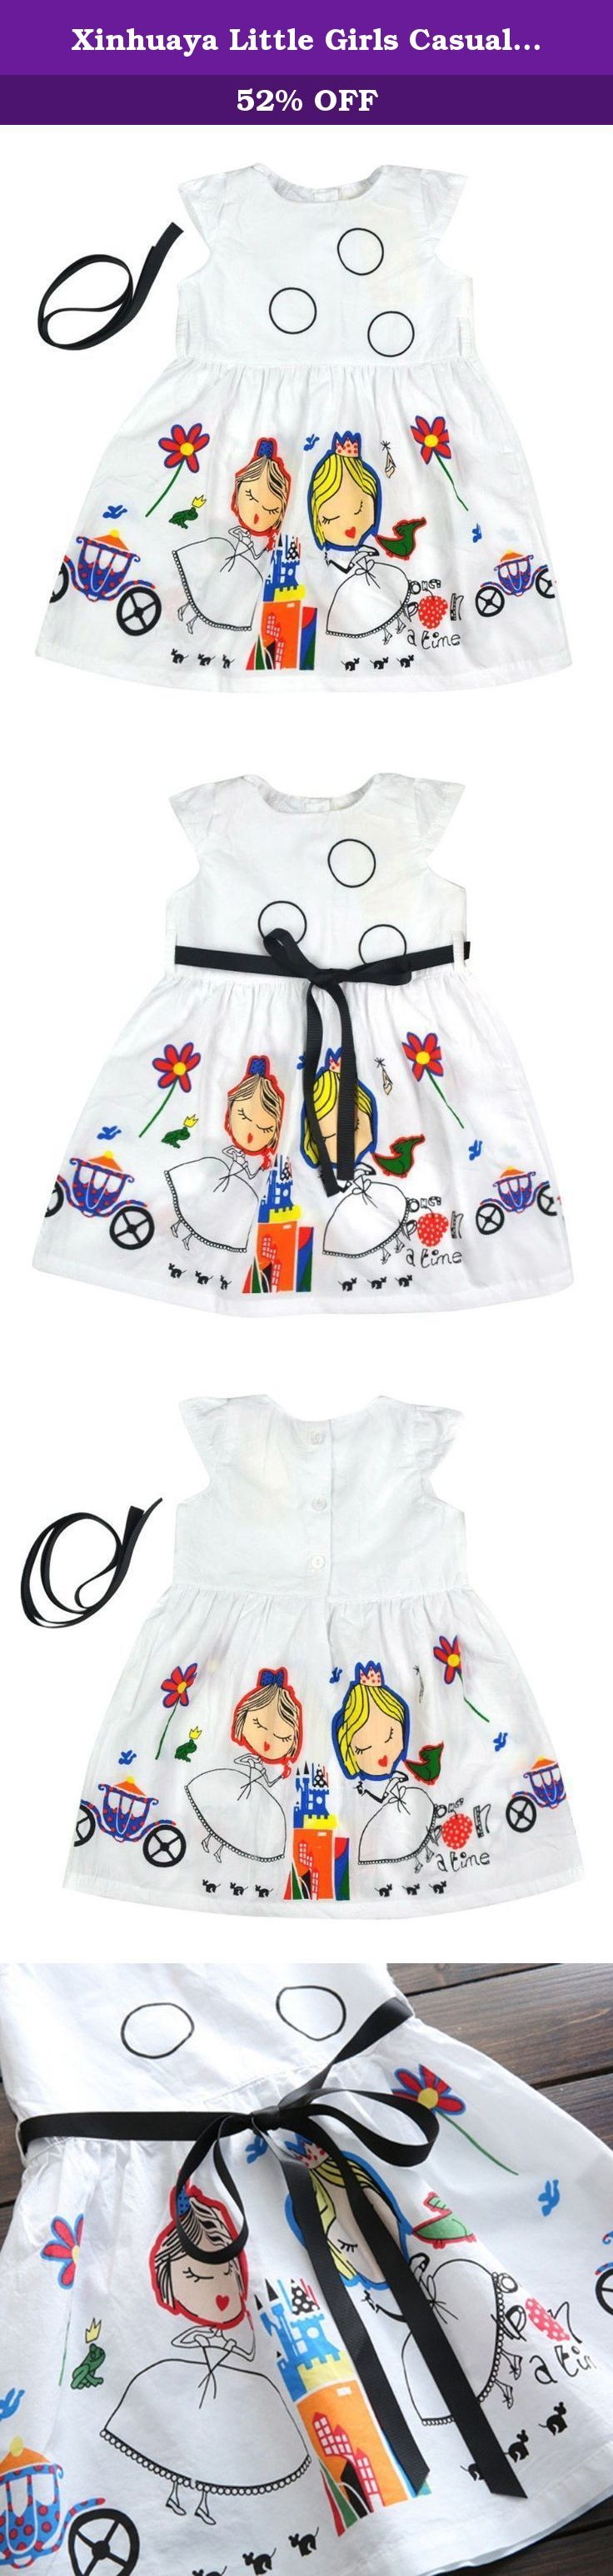 """Xinhuaya Little Girls Casual Flower Cartoon Circle Pattern Dresses with Belt 6T. Little Girls Flower Cartoon Printed Cap Sleeves Dress with Belt Tutu Dress make your girls like a princess Material:Cotton; Soft and Cozy for your princess to wear Main Color: White Sleeve Type:Cap Sleeves Pattern: Flower, Circle, Cartoon Printed Season:Spring,Summer, Fall/Autumn Size:Fits for 2-7 Years Kids Girls Size:90(2T) ;1/2Bust:10.62"""" ;Length: 18.89"""" Size:100(3T) ;1/2Bust: 11.02"""";Length: 19.68""""..."""